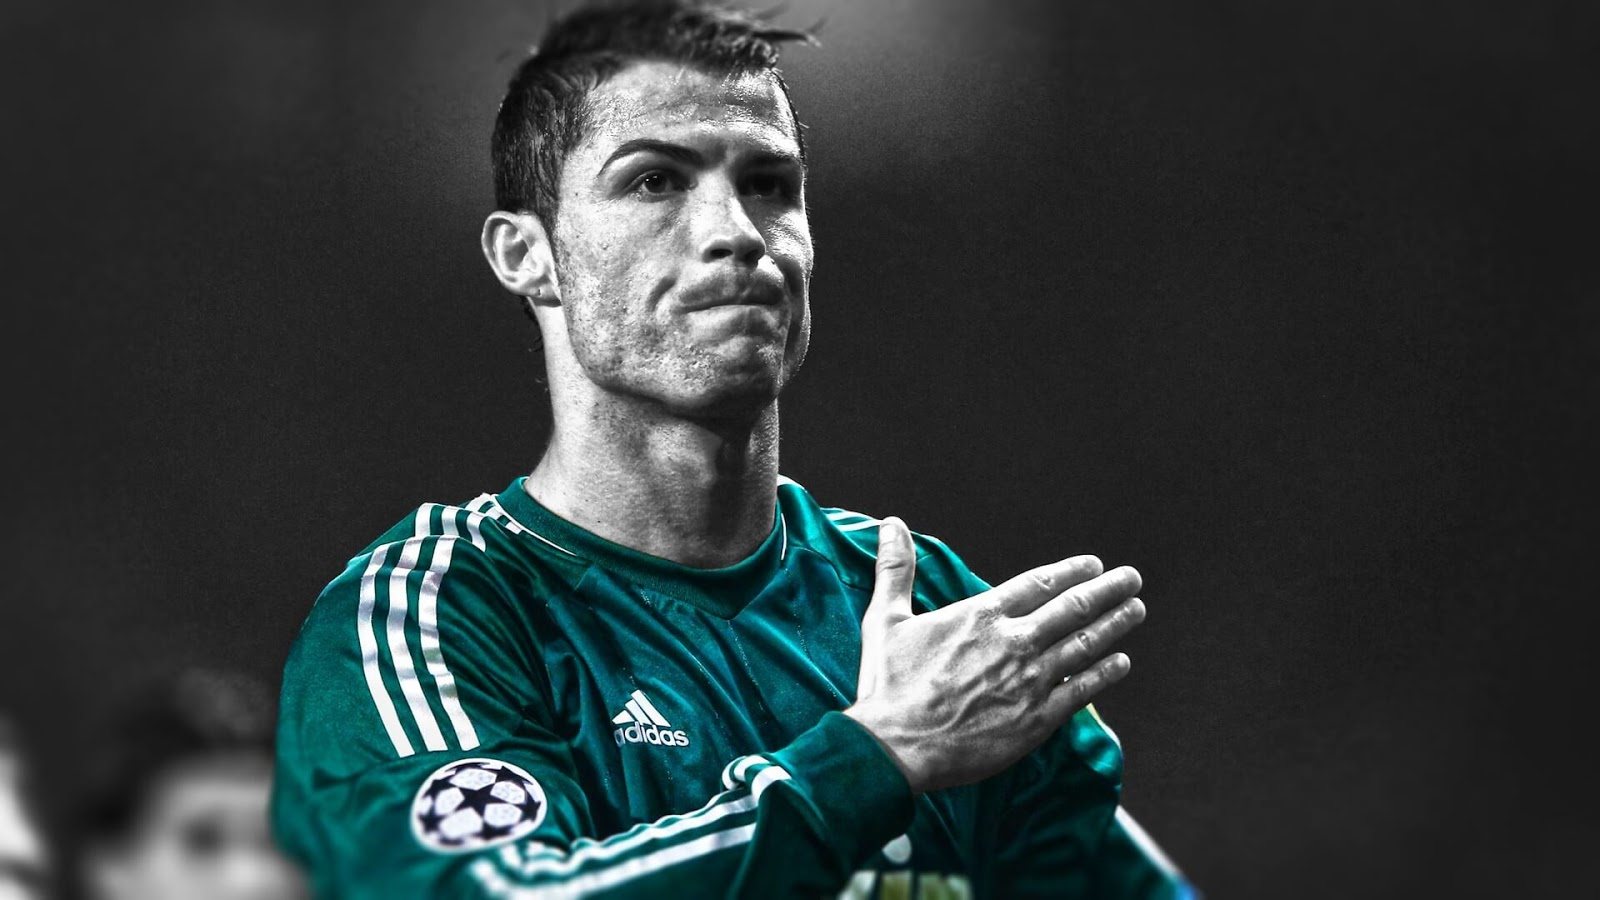 ronaldo hd wallpapers for iphone 6